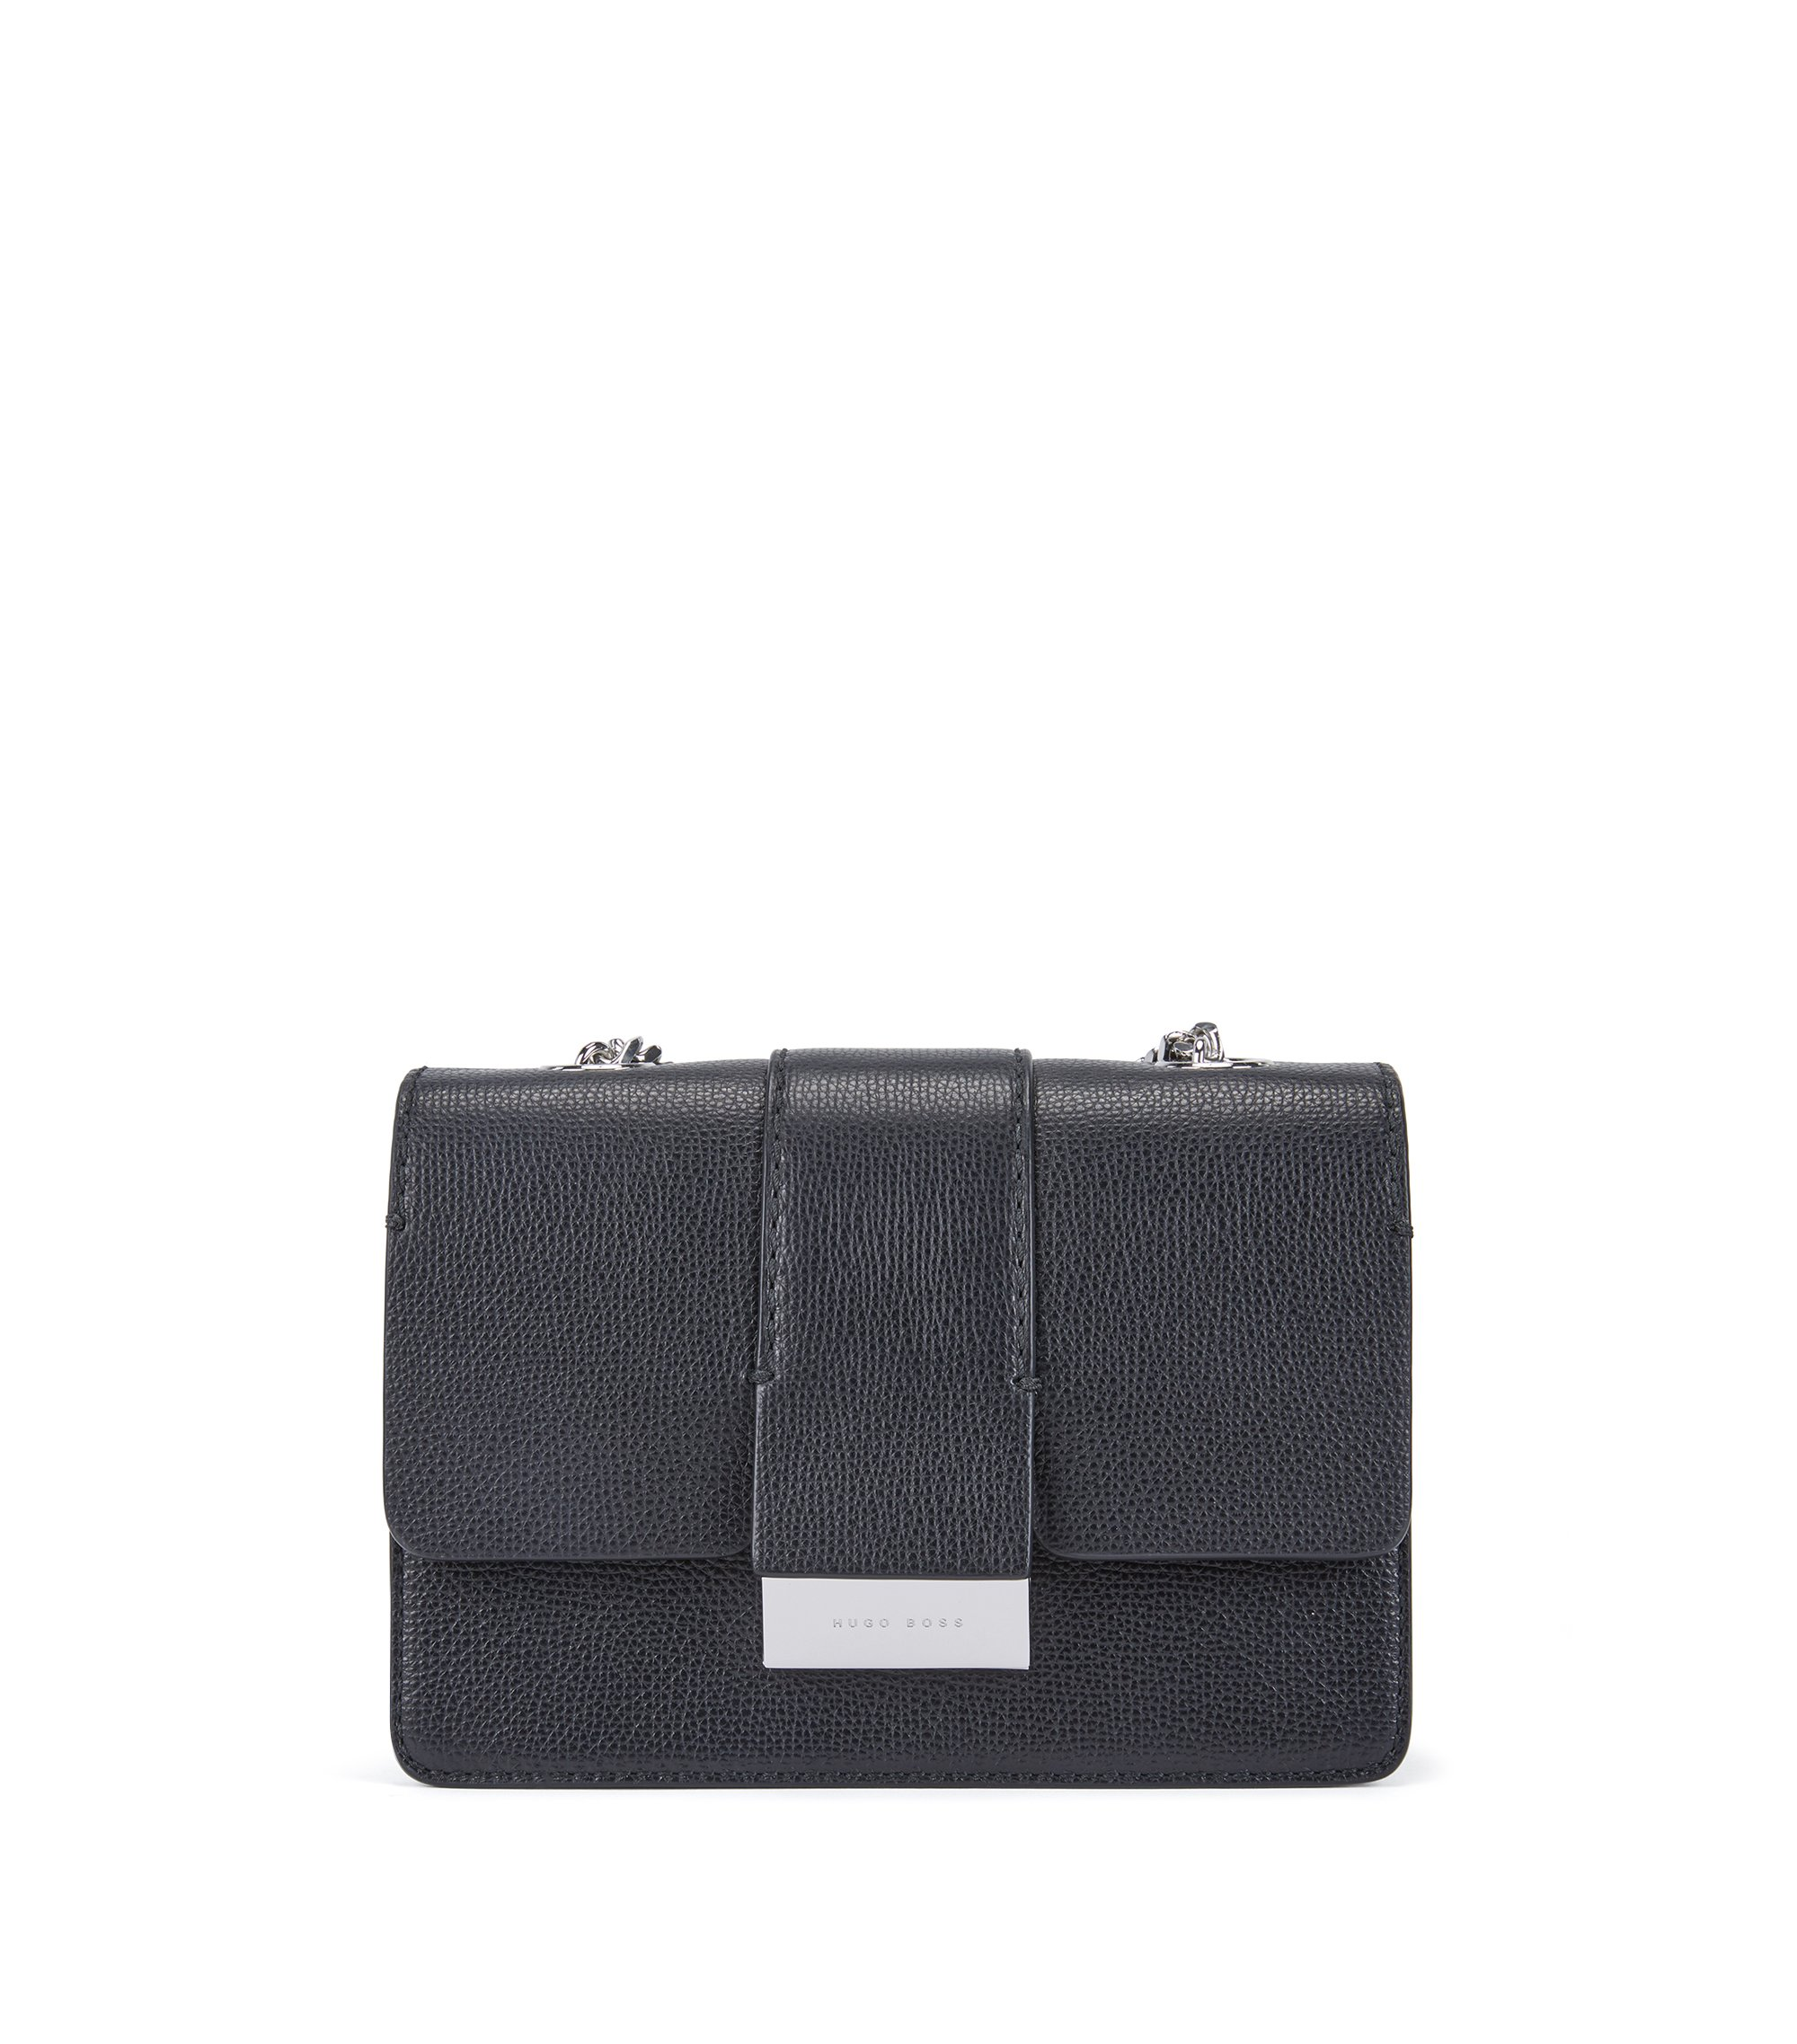 Crossbody bag in grained Italian leather with chain detail, Black